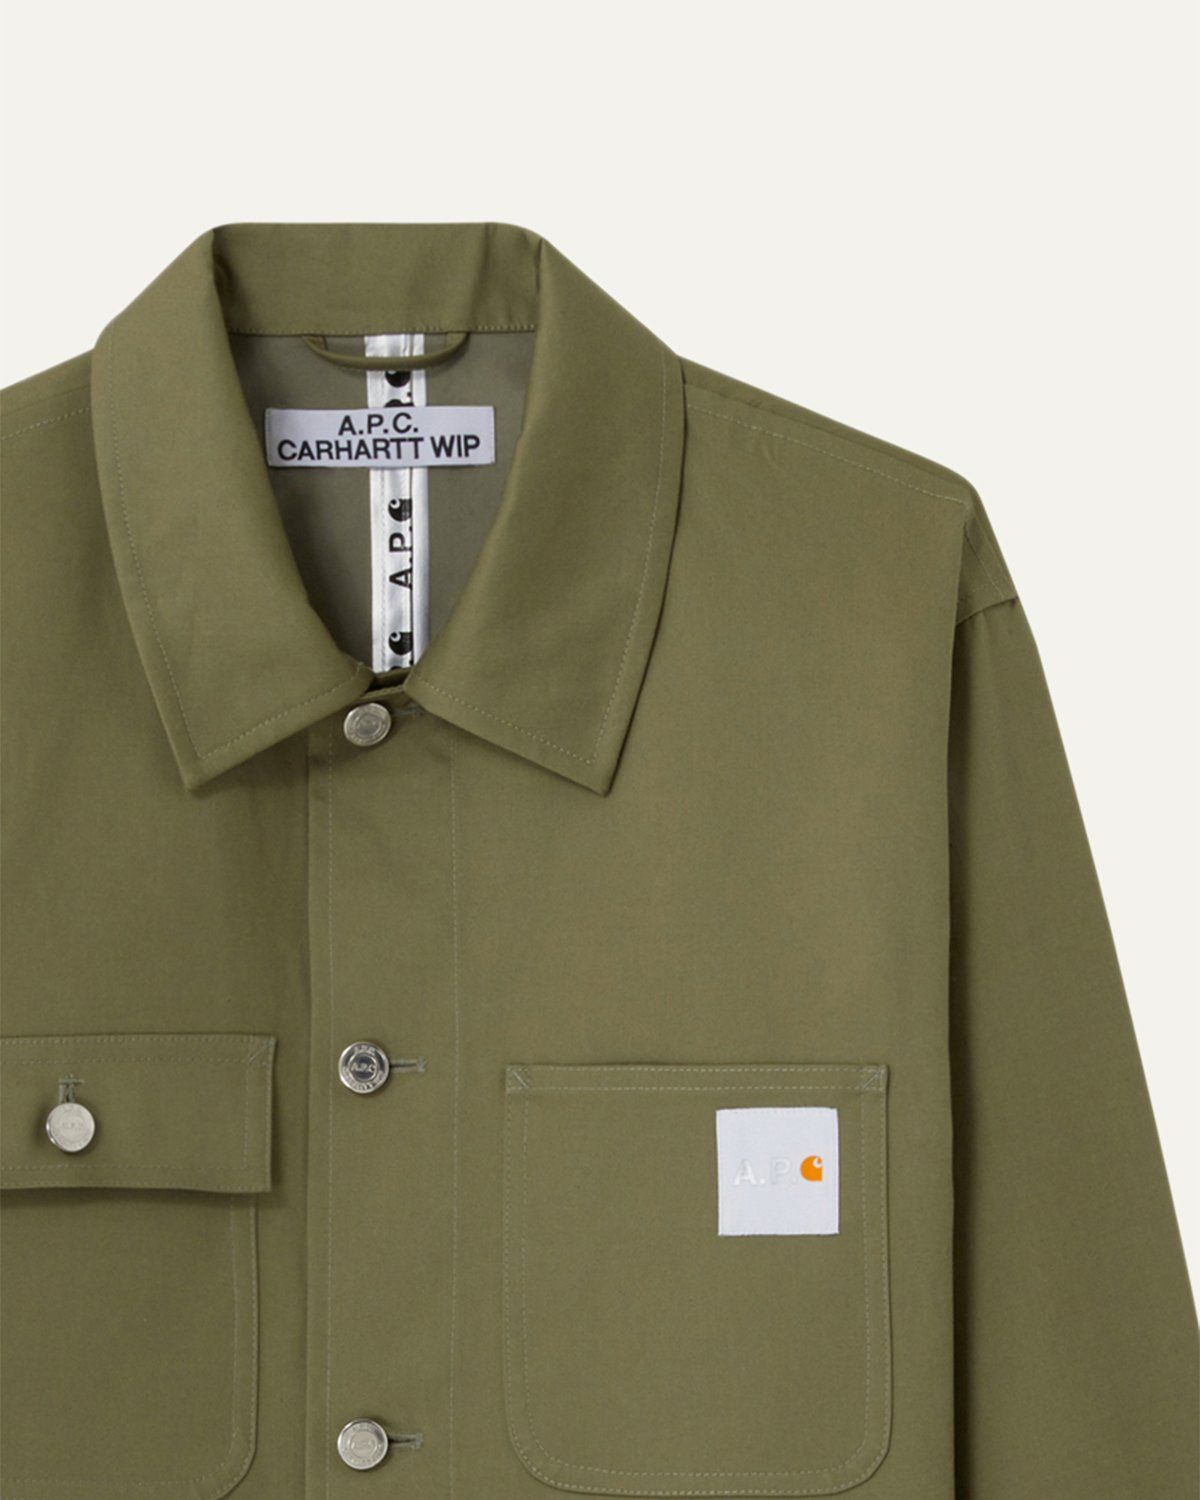 A.P.C. x Carhartt WIP - Work Jacket - Image 2